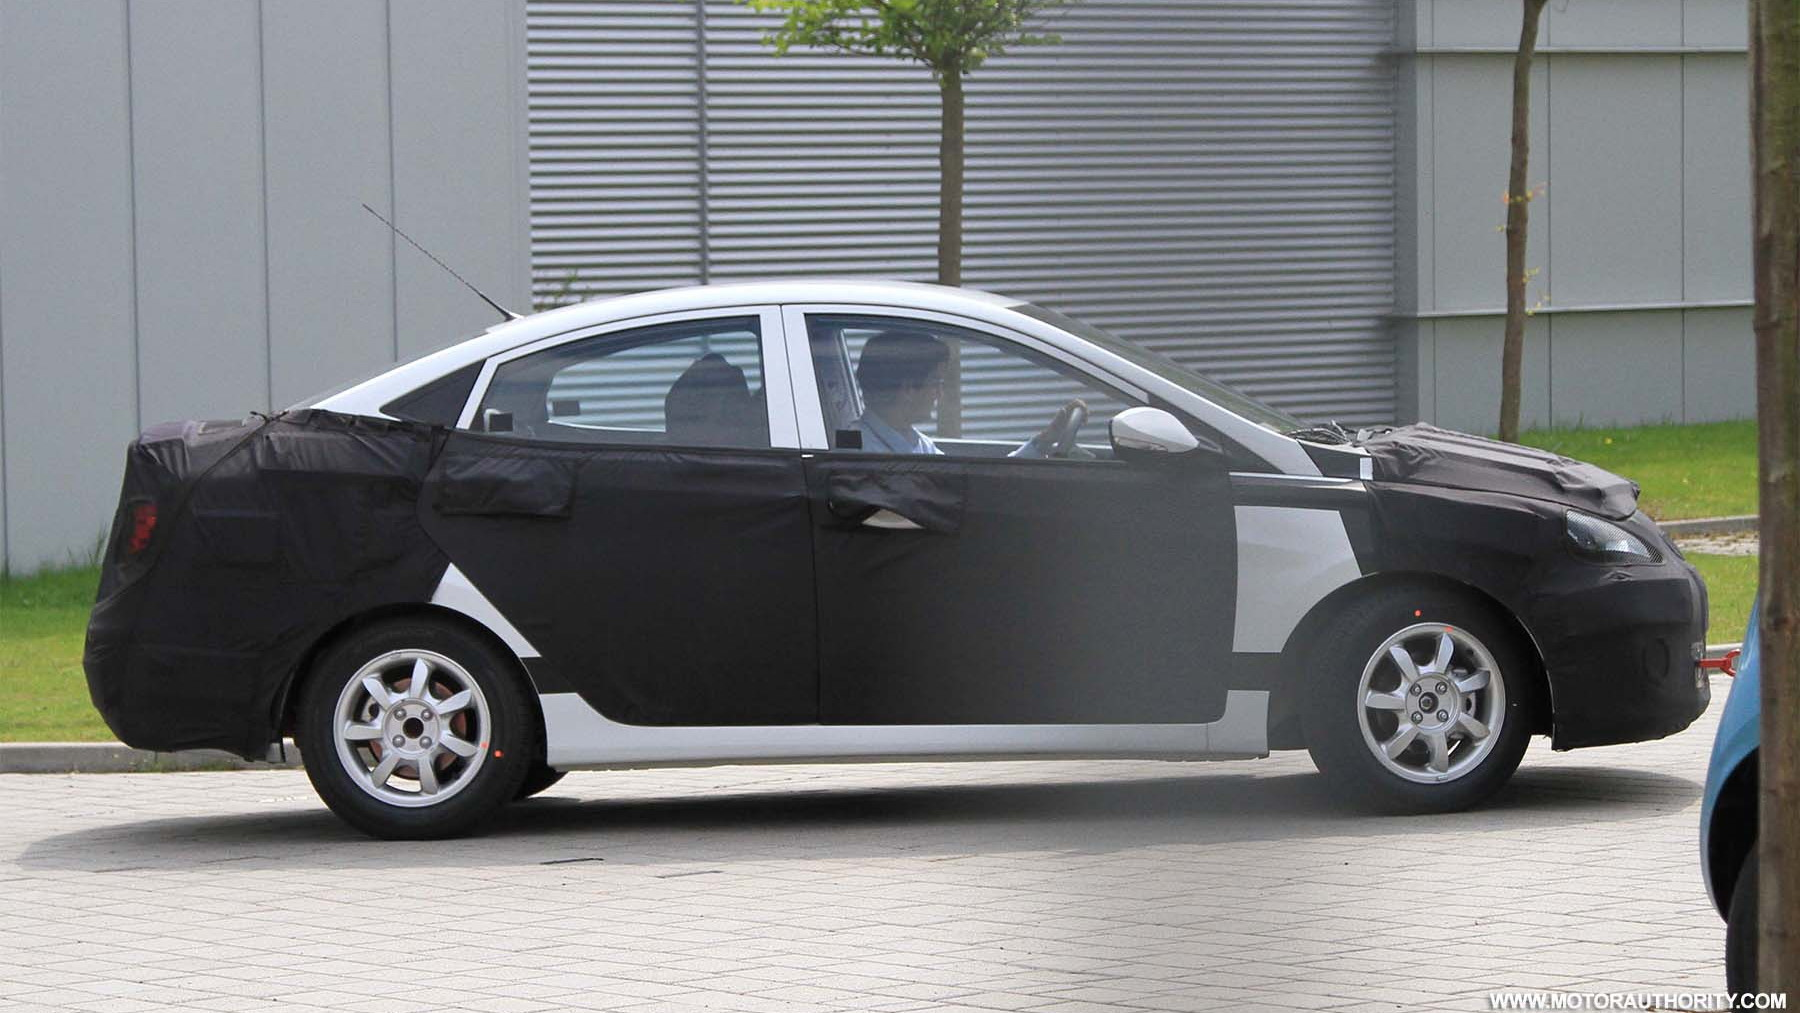 2012 Hyundai Accent spy shots